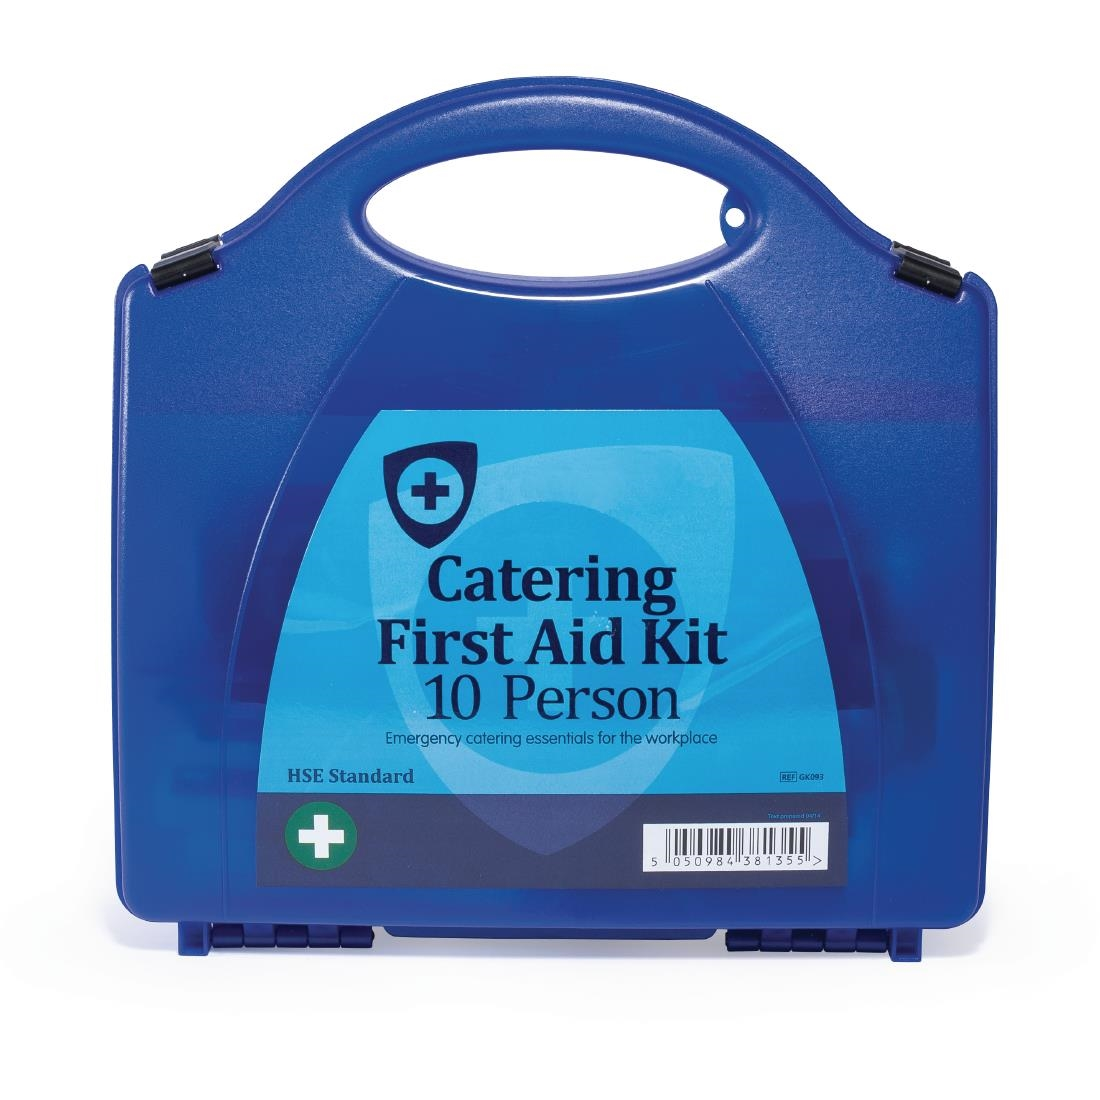 Vogue Hse First Aid Kit Catering Workplace Emergency Health Safety ...